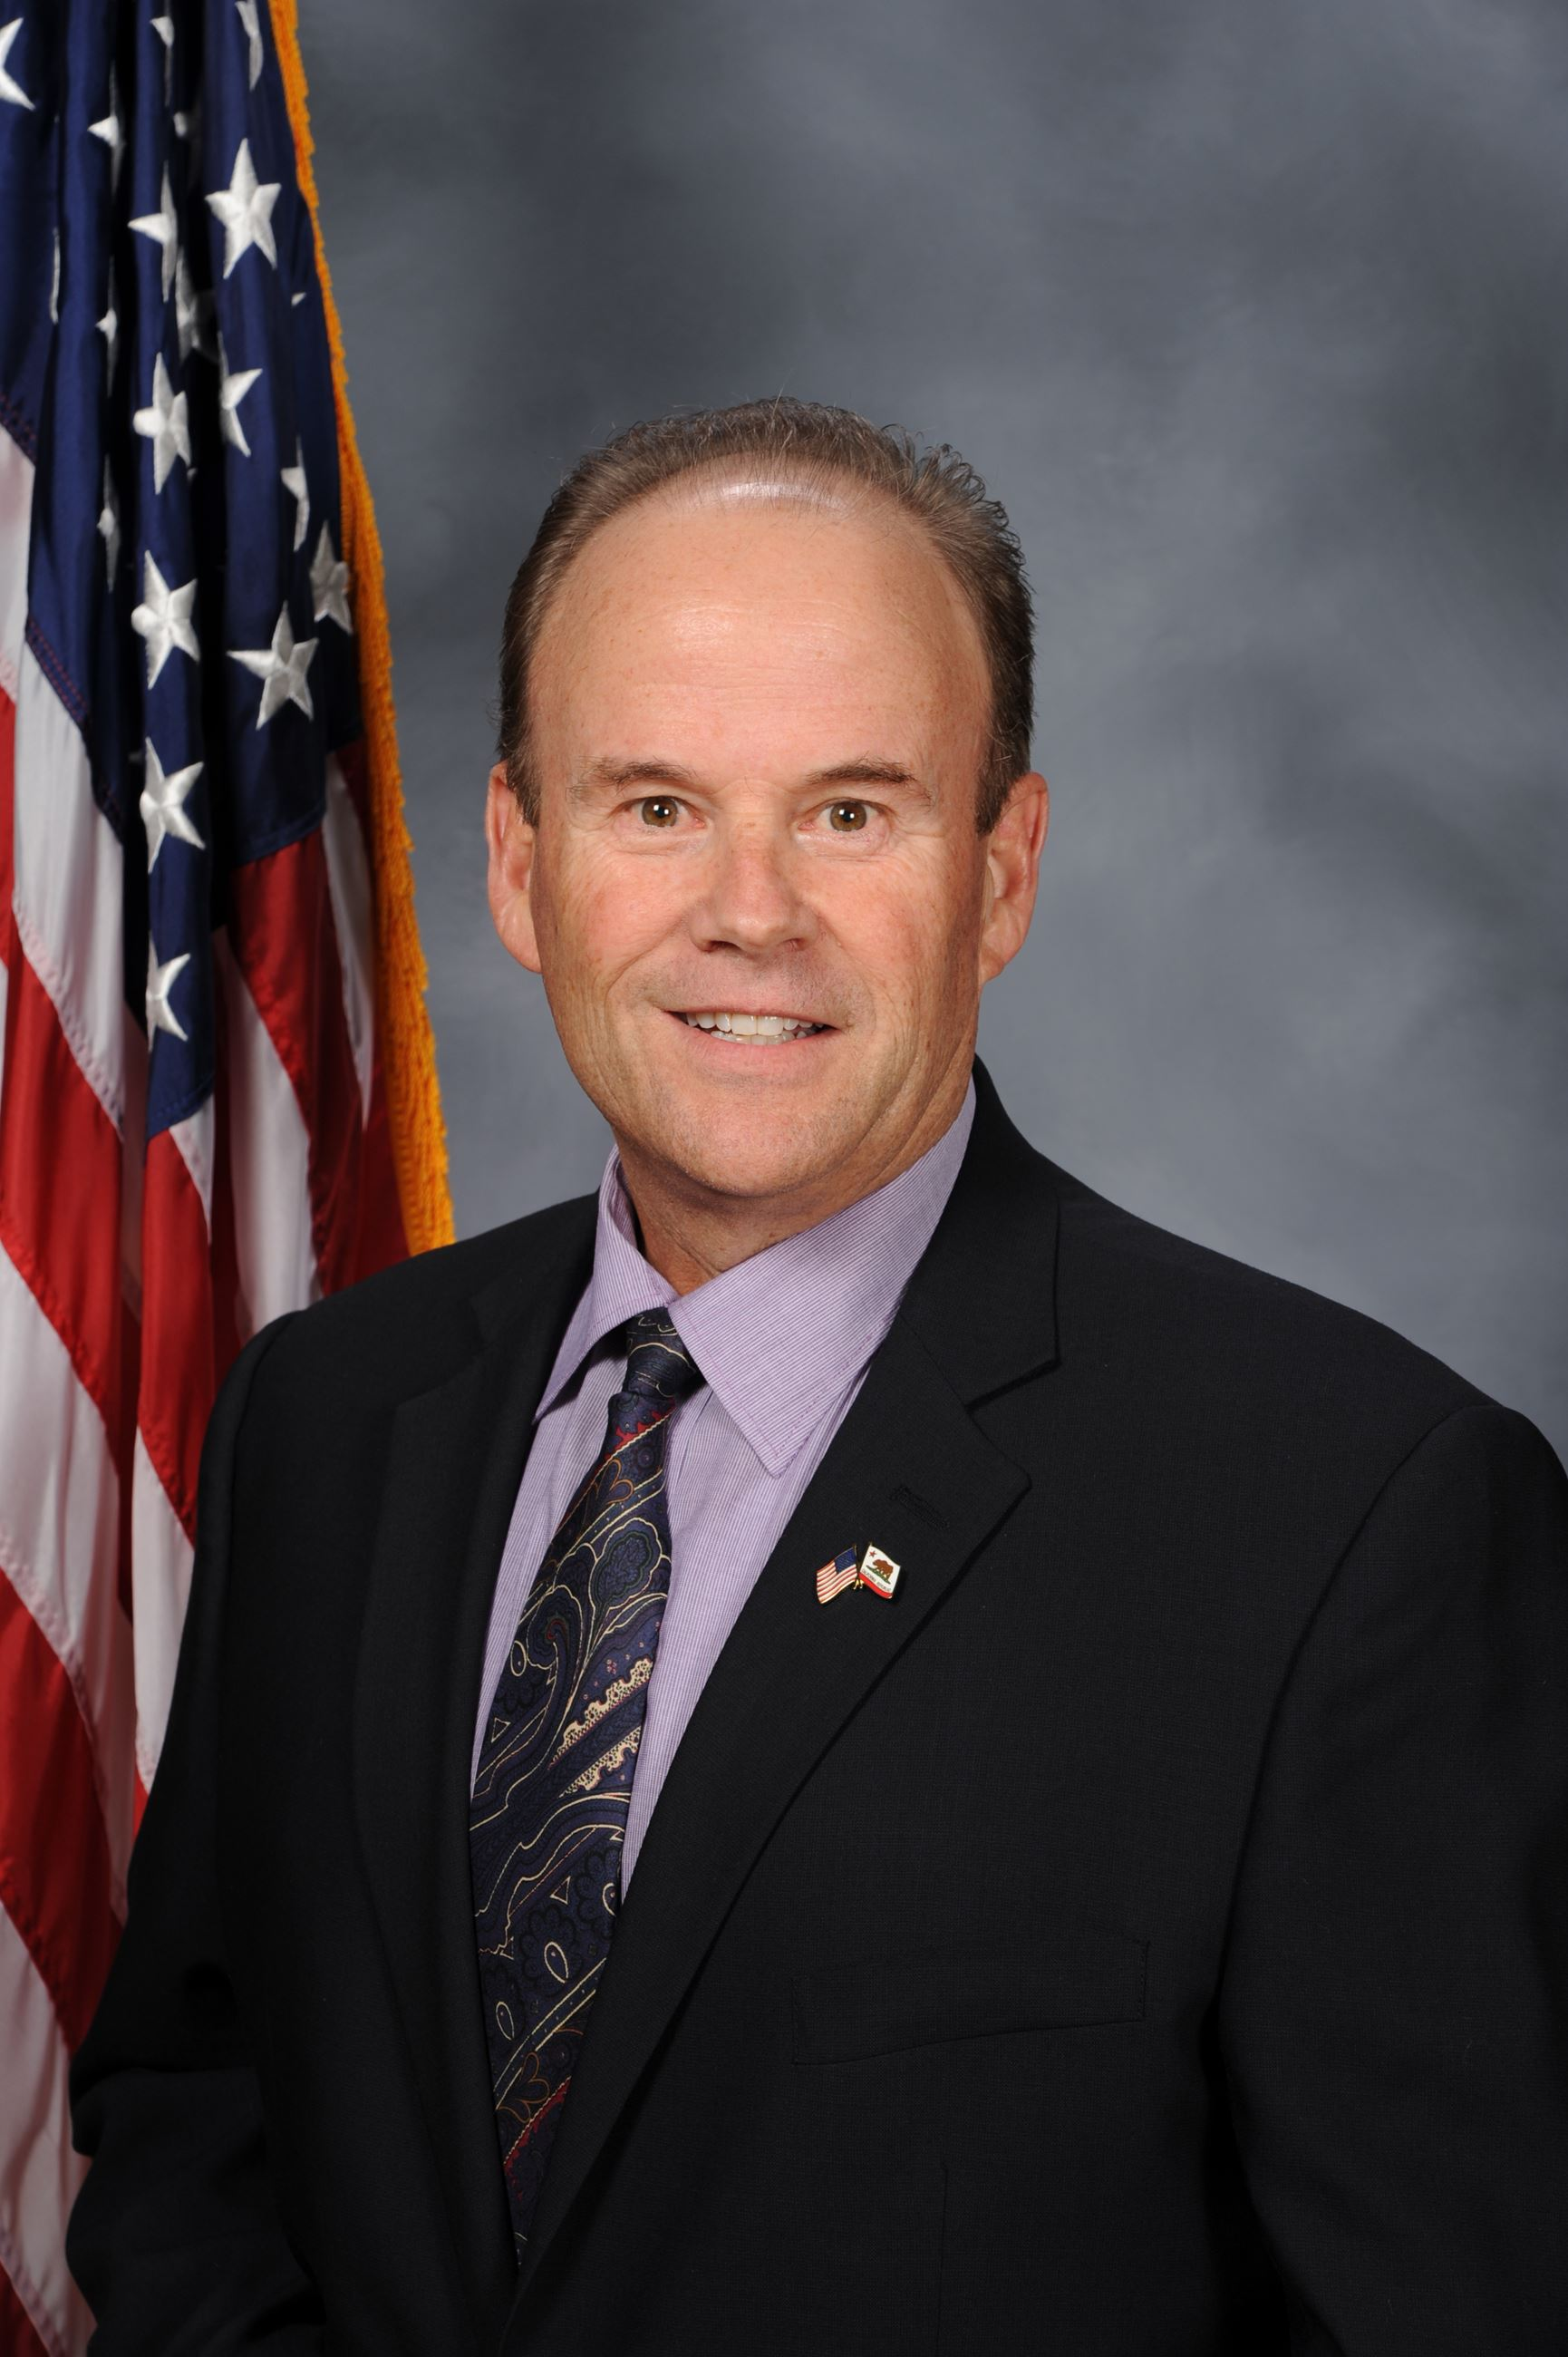 Photo of Councilmember Lloyd White